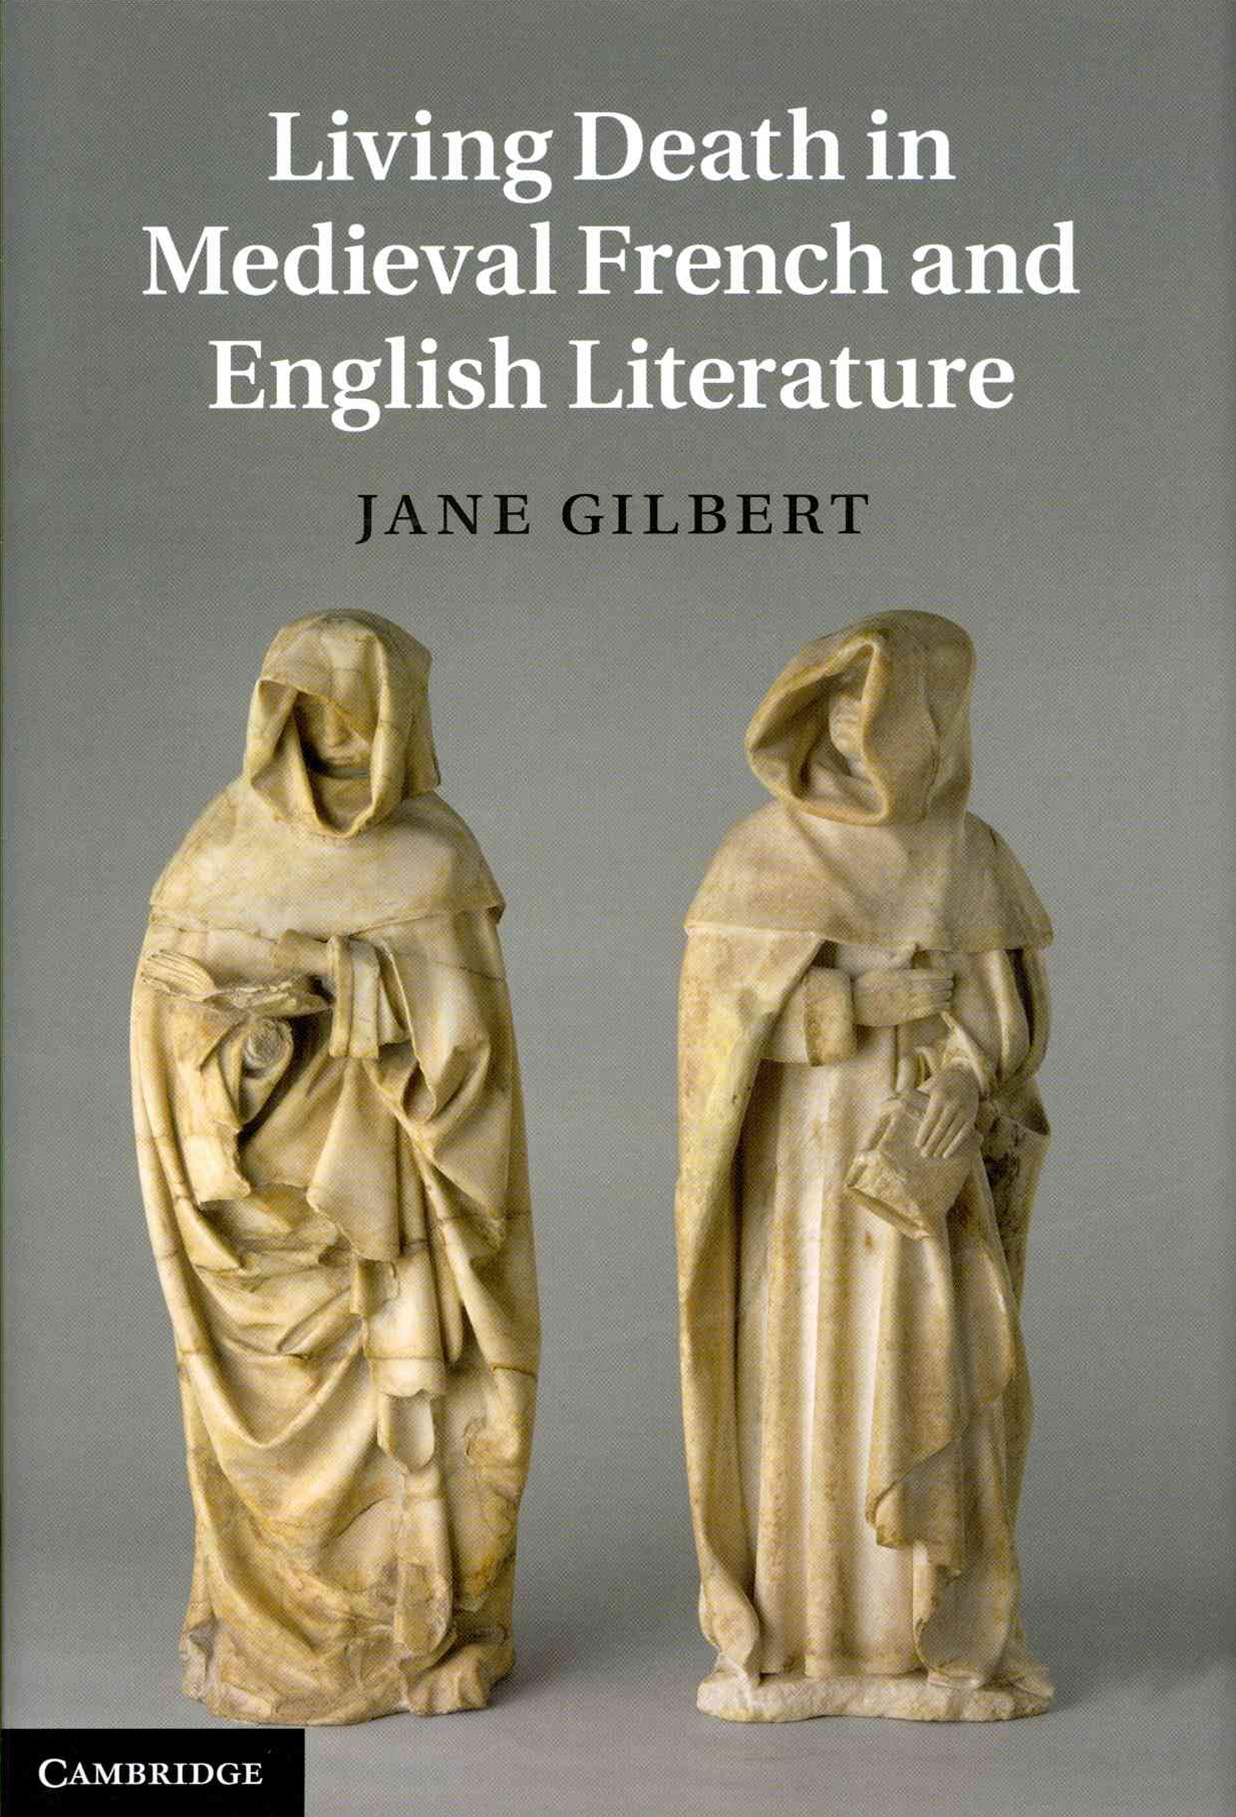 Living Death in Medieval French and English Literature